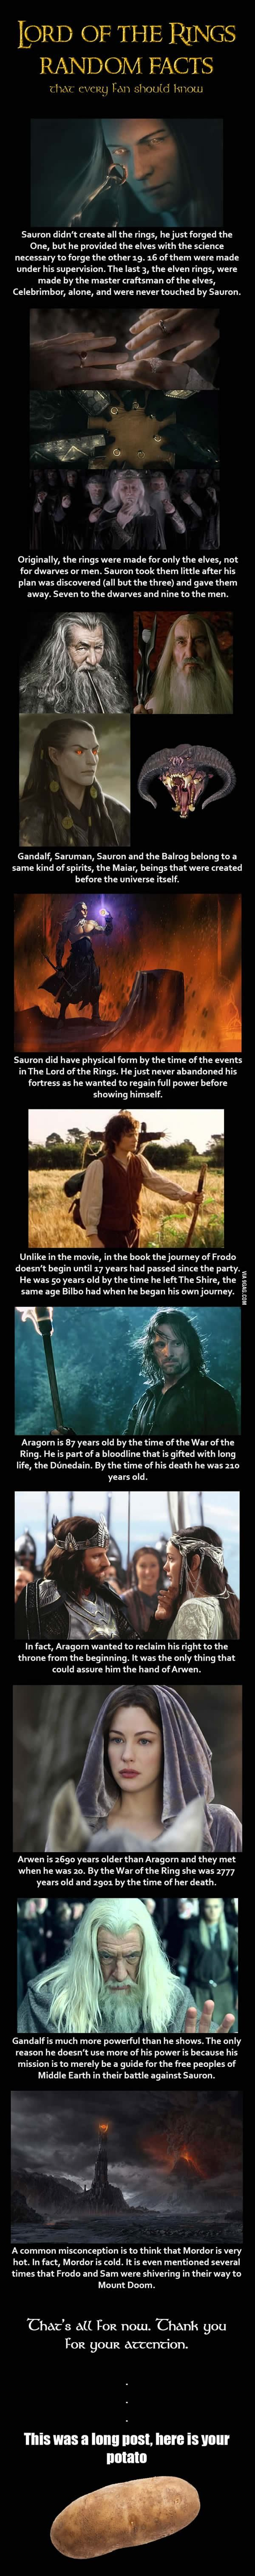 Lord of the rings facts! - Imgur